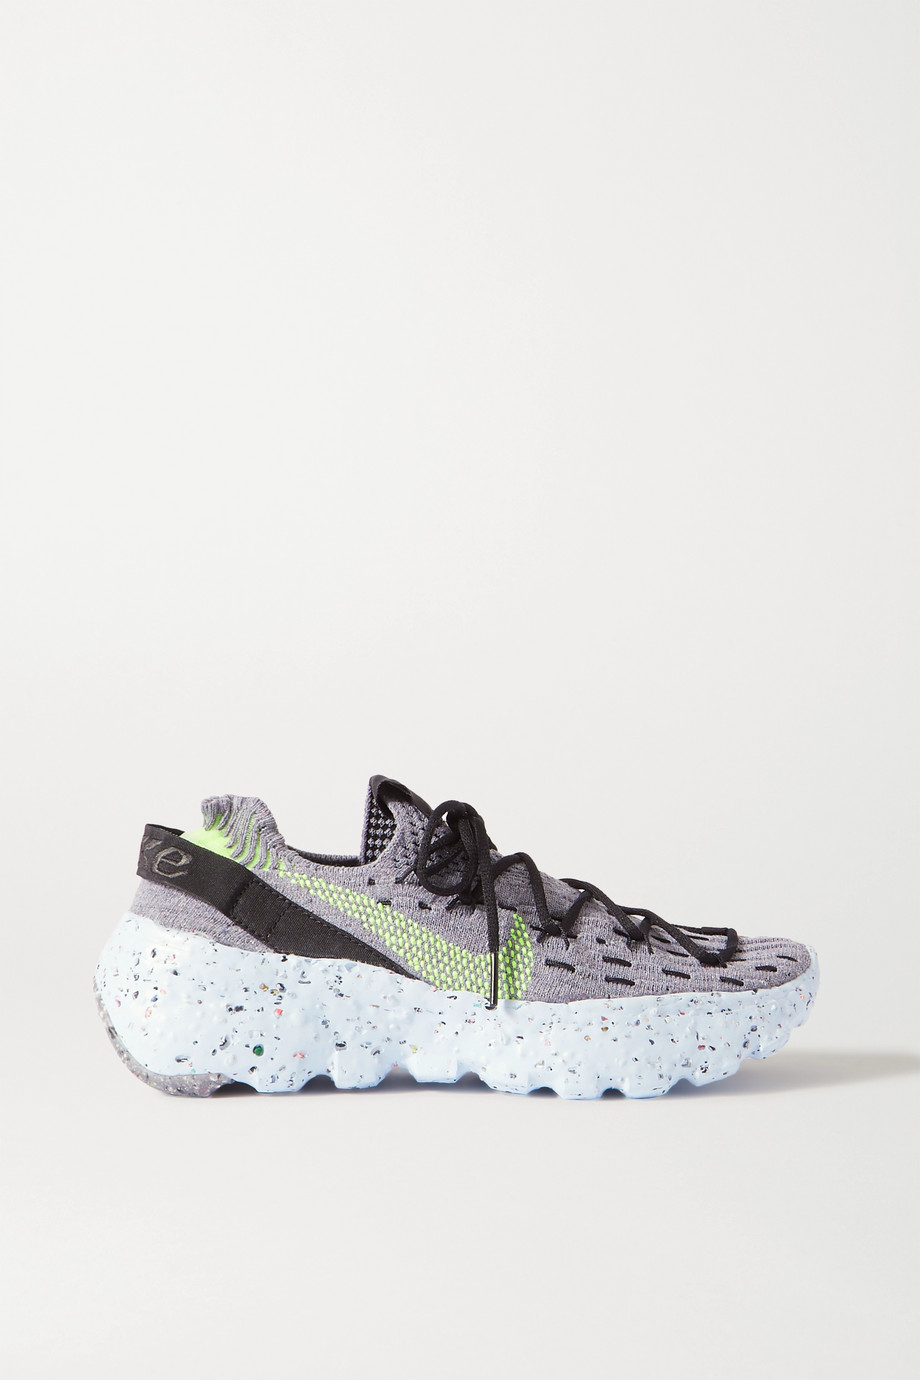 Nike Space Hippie stretch-knit sneakers